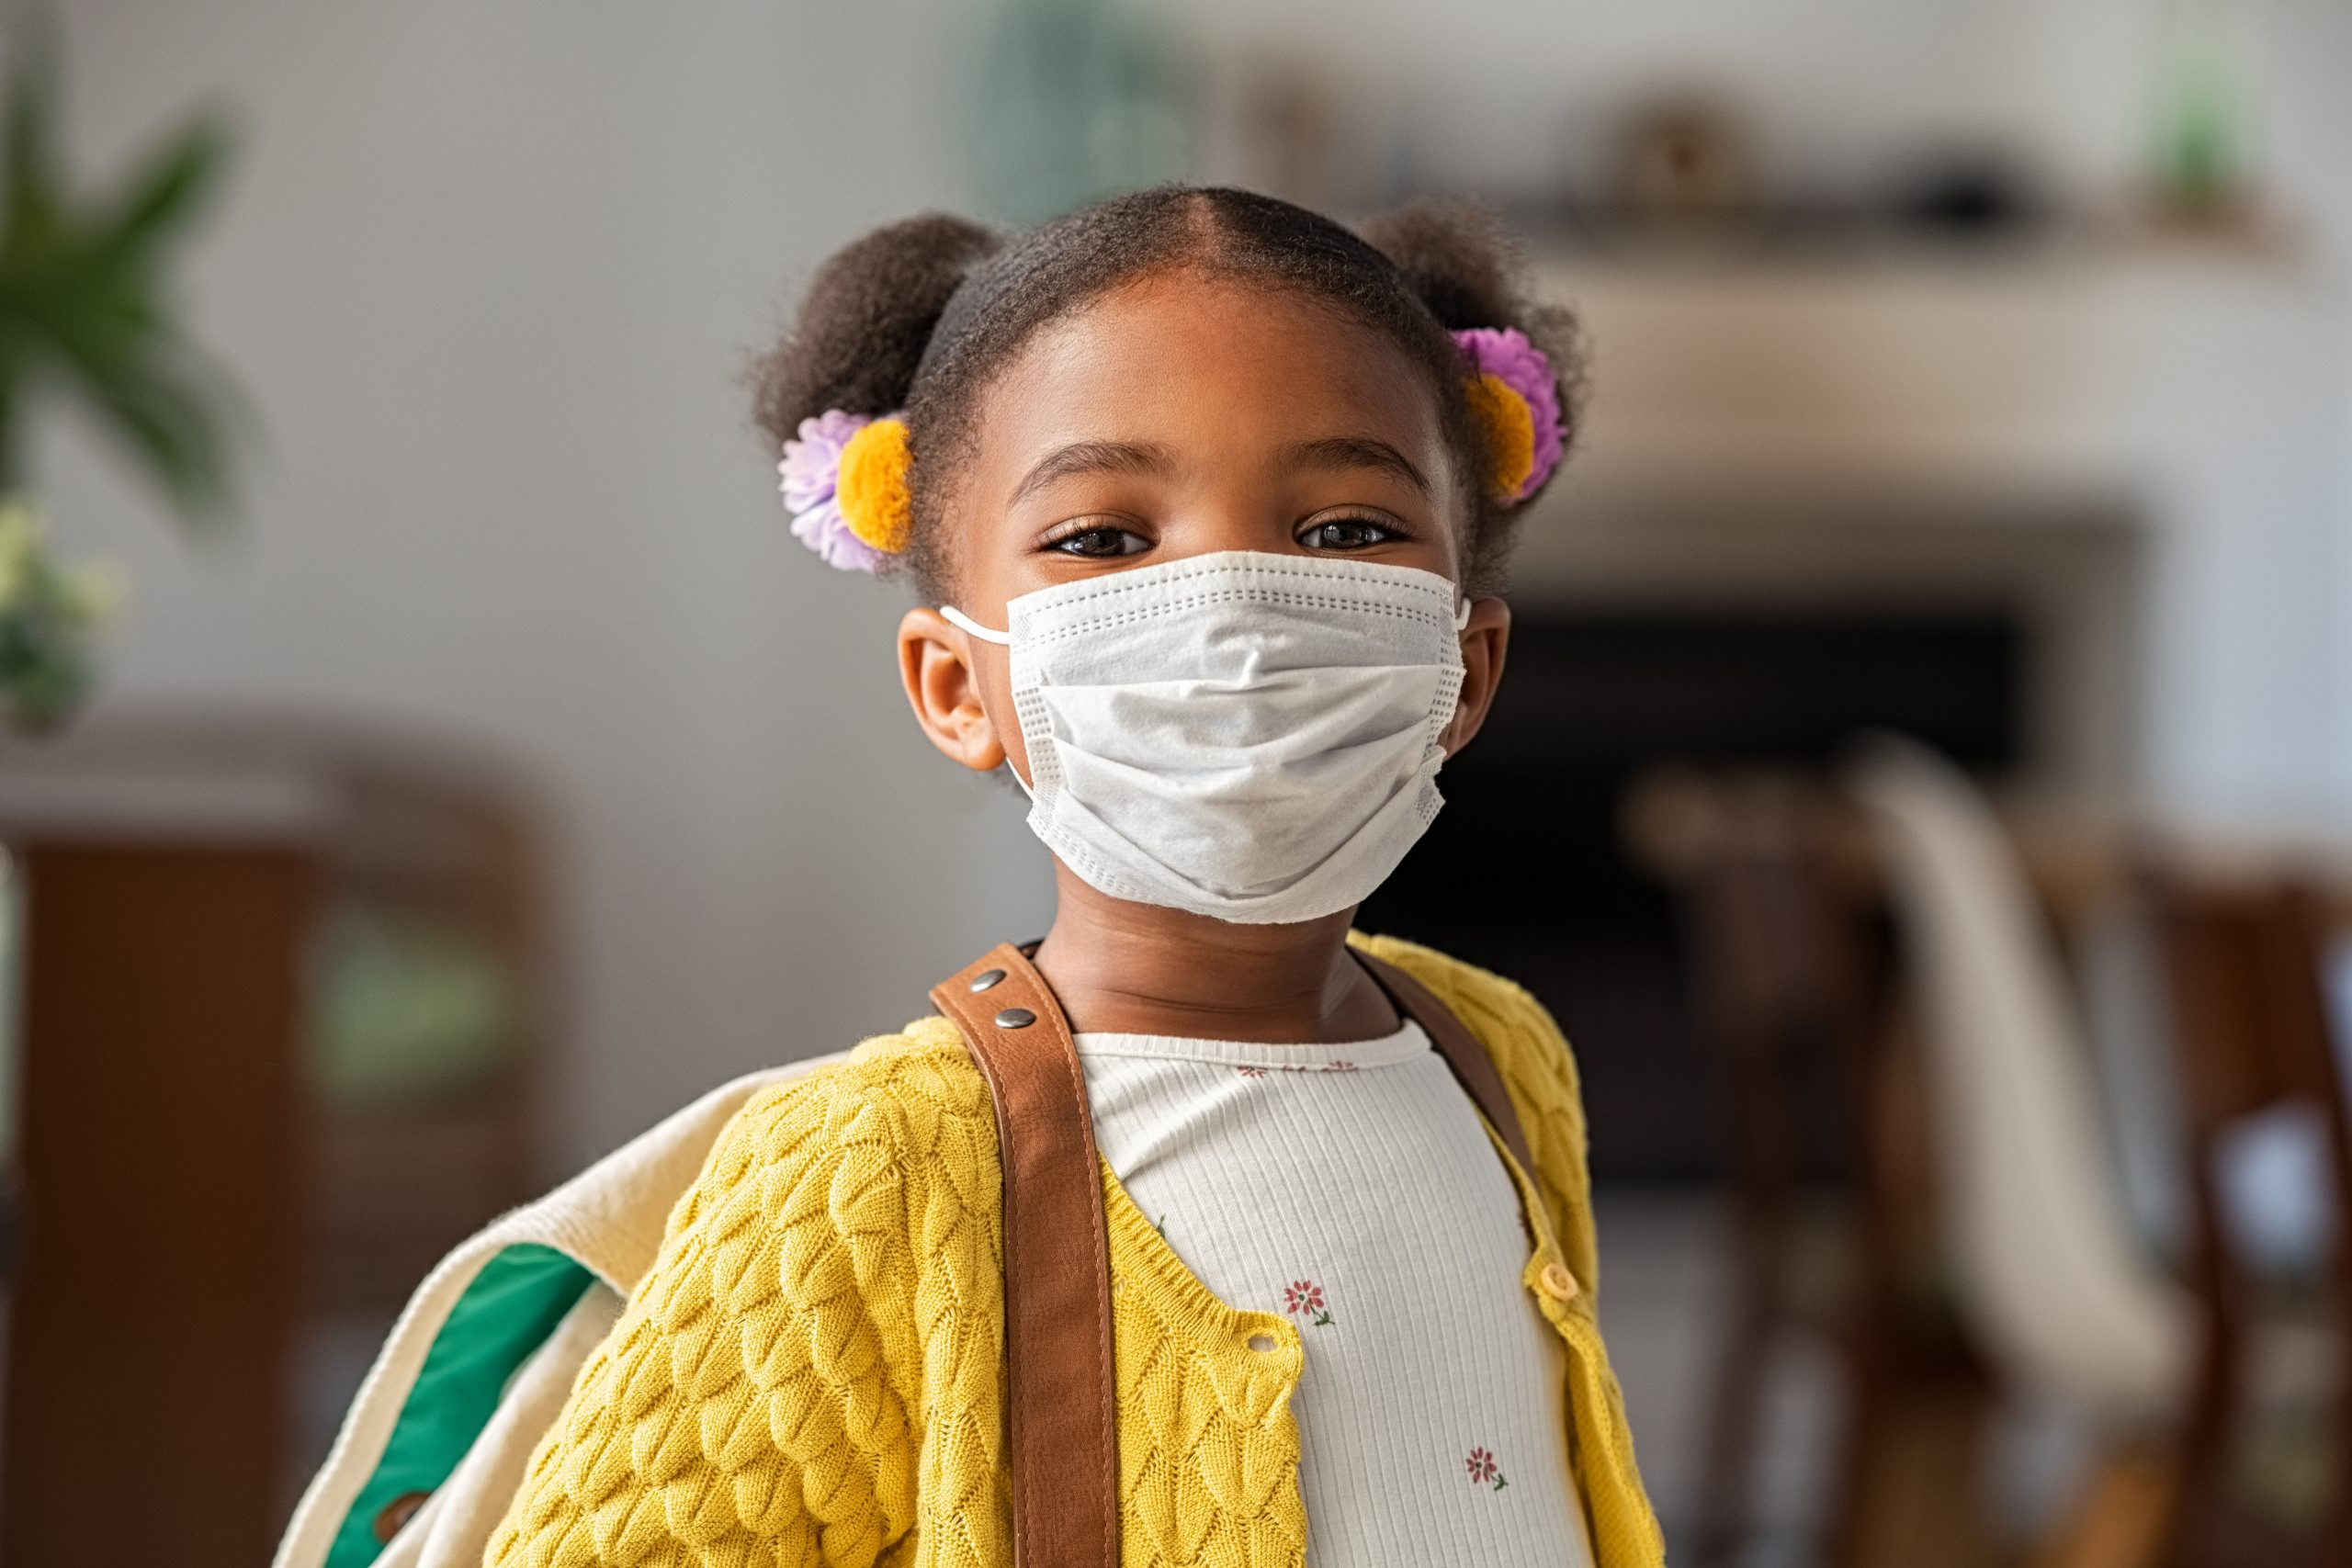 Portrait of black little girl with buns hair wearing bagpack and covid-19 protective face mask ready for elementary school. African american female child wearing surgical mask and looking at camera with school bag. Blacl little girl going back to primary school after quarantine time from corona virus pandemic.